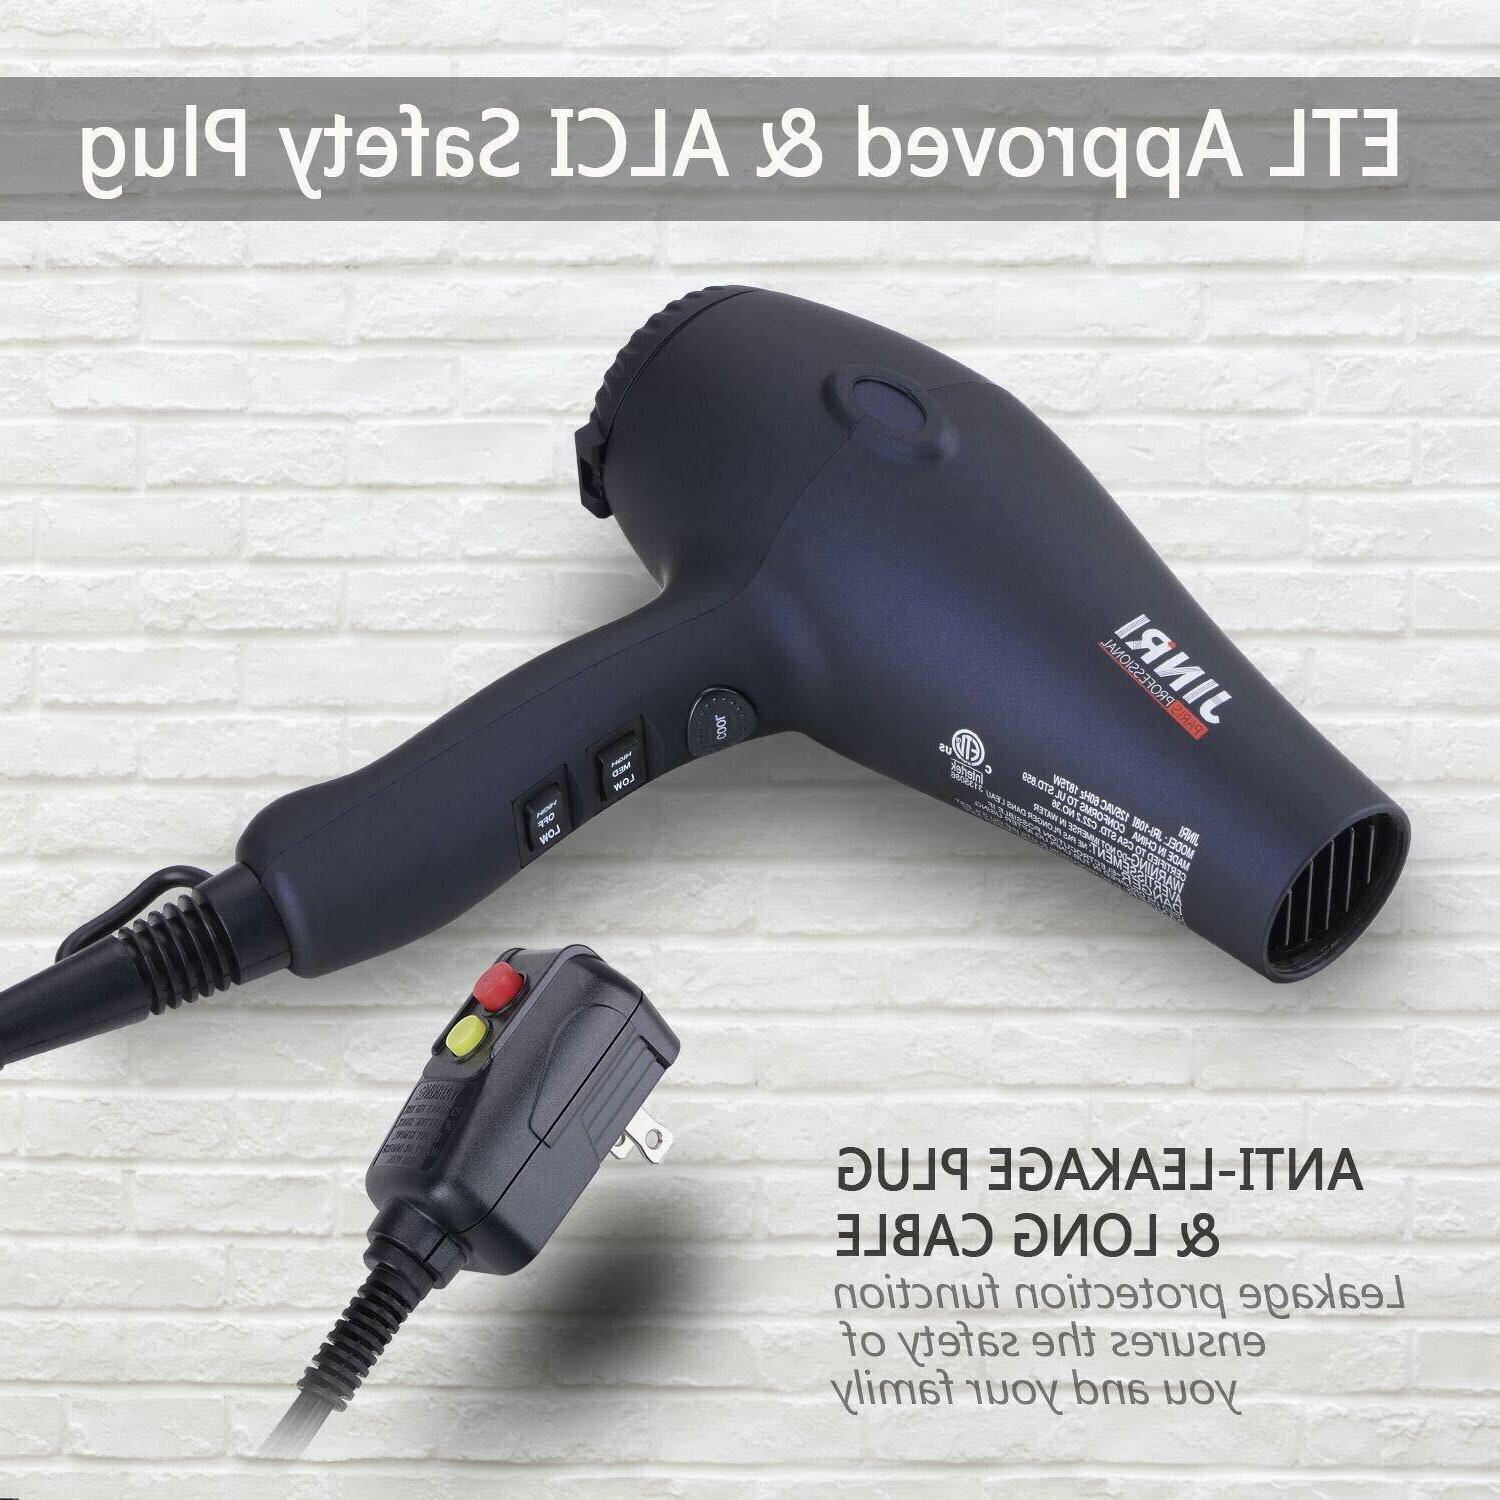 1875w Tourmaline Hair Dryer Negative Ion Salon